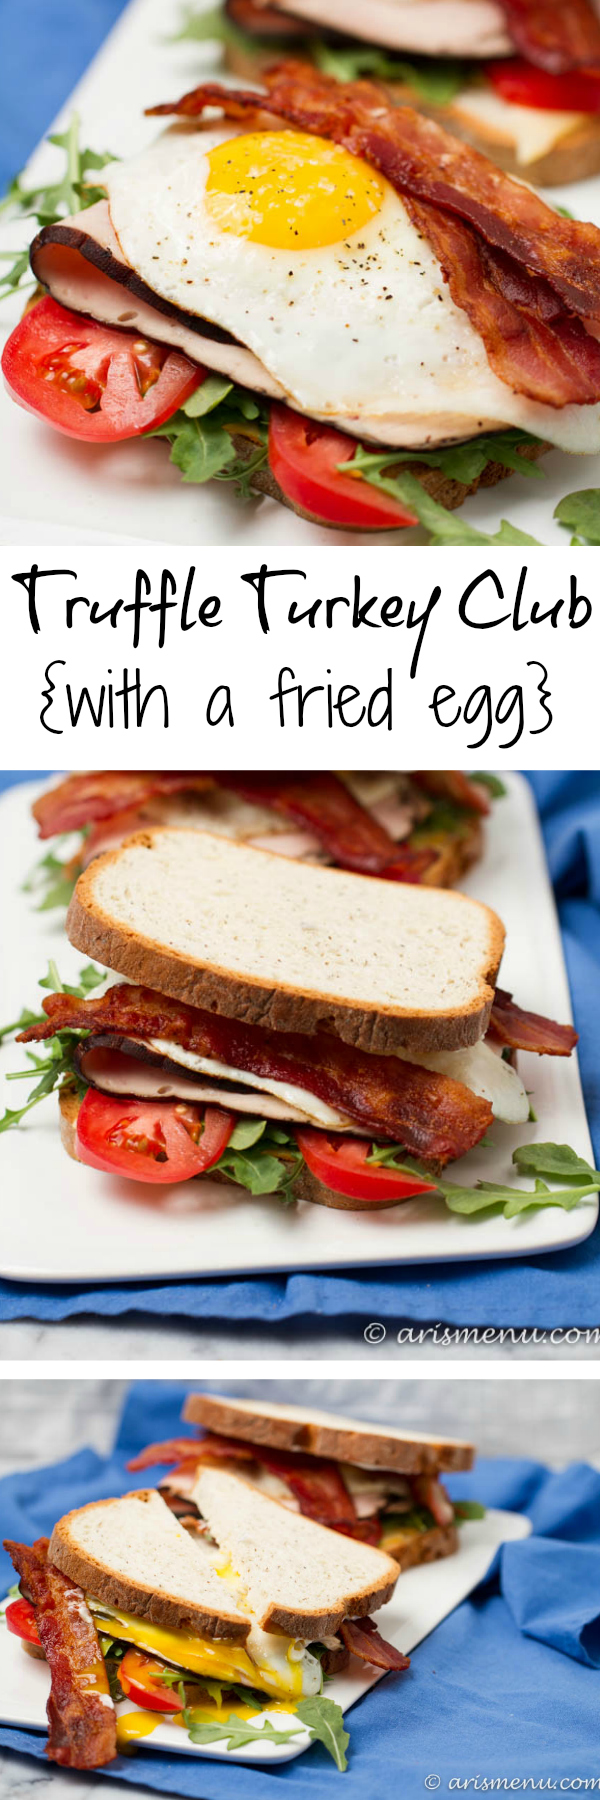 Truffle Turkey Club {with a fried egg}: An update on the classic sandwich with truffle mayo and a perfectly drippy fried egg